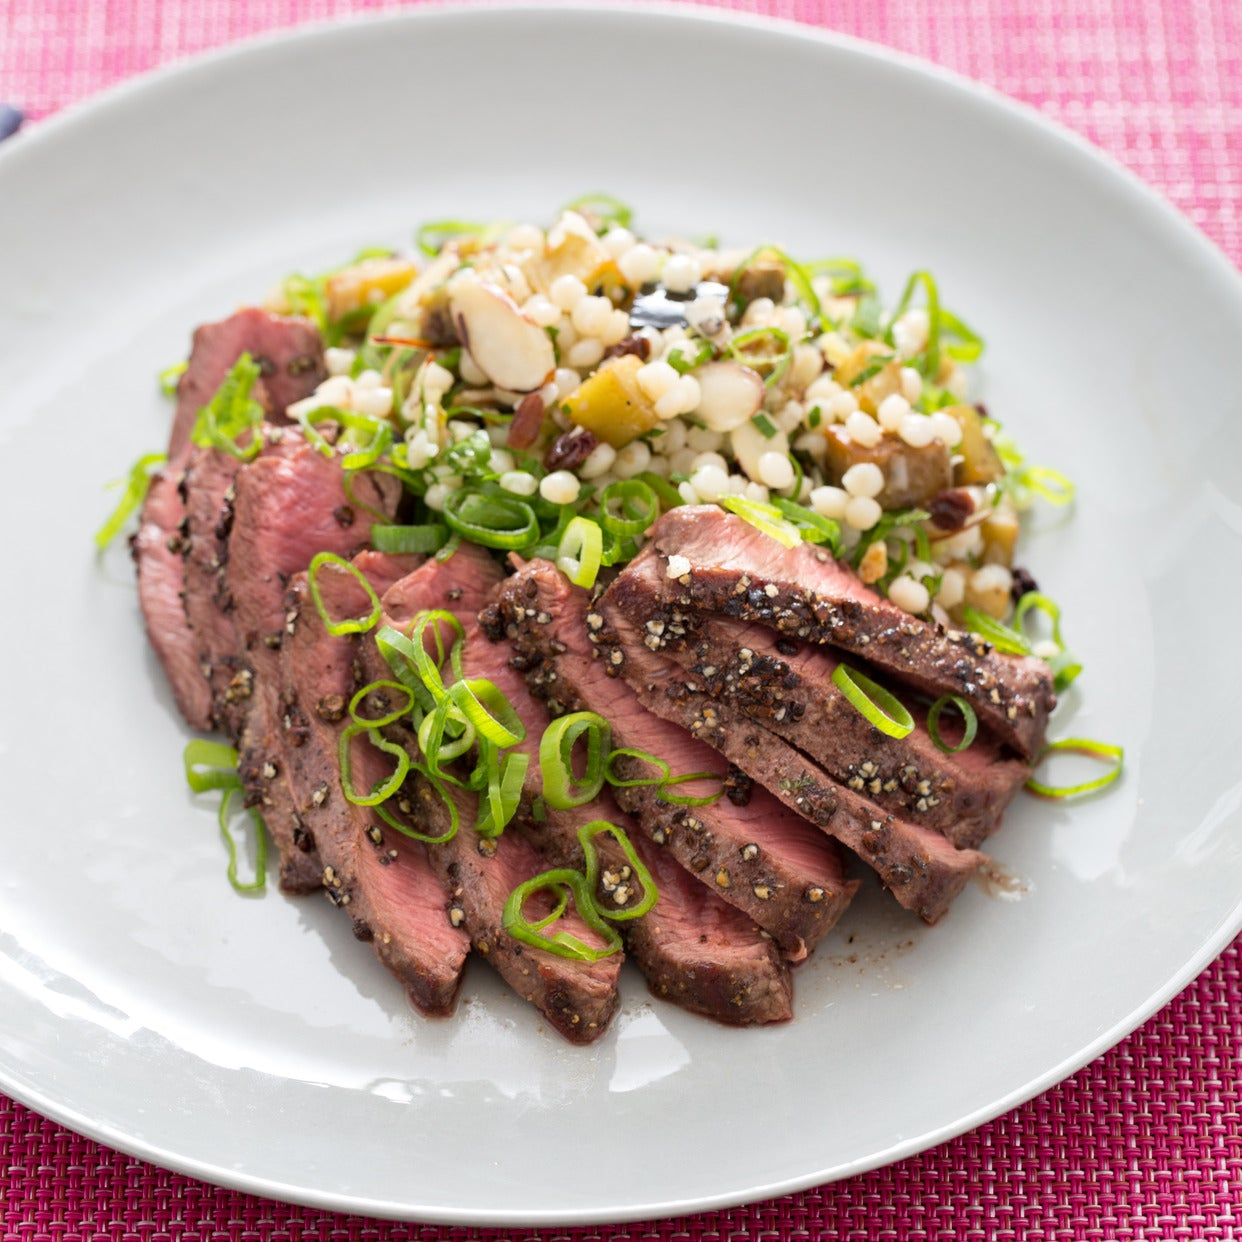 Grains of Paradise-Crusted Steak with Preserved Lemon, Eggplant & Israeli Couscous Salad